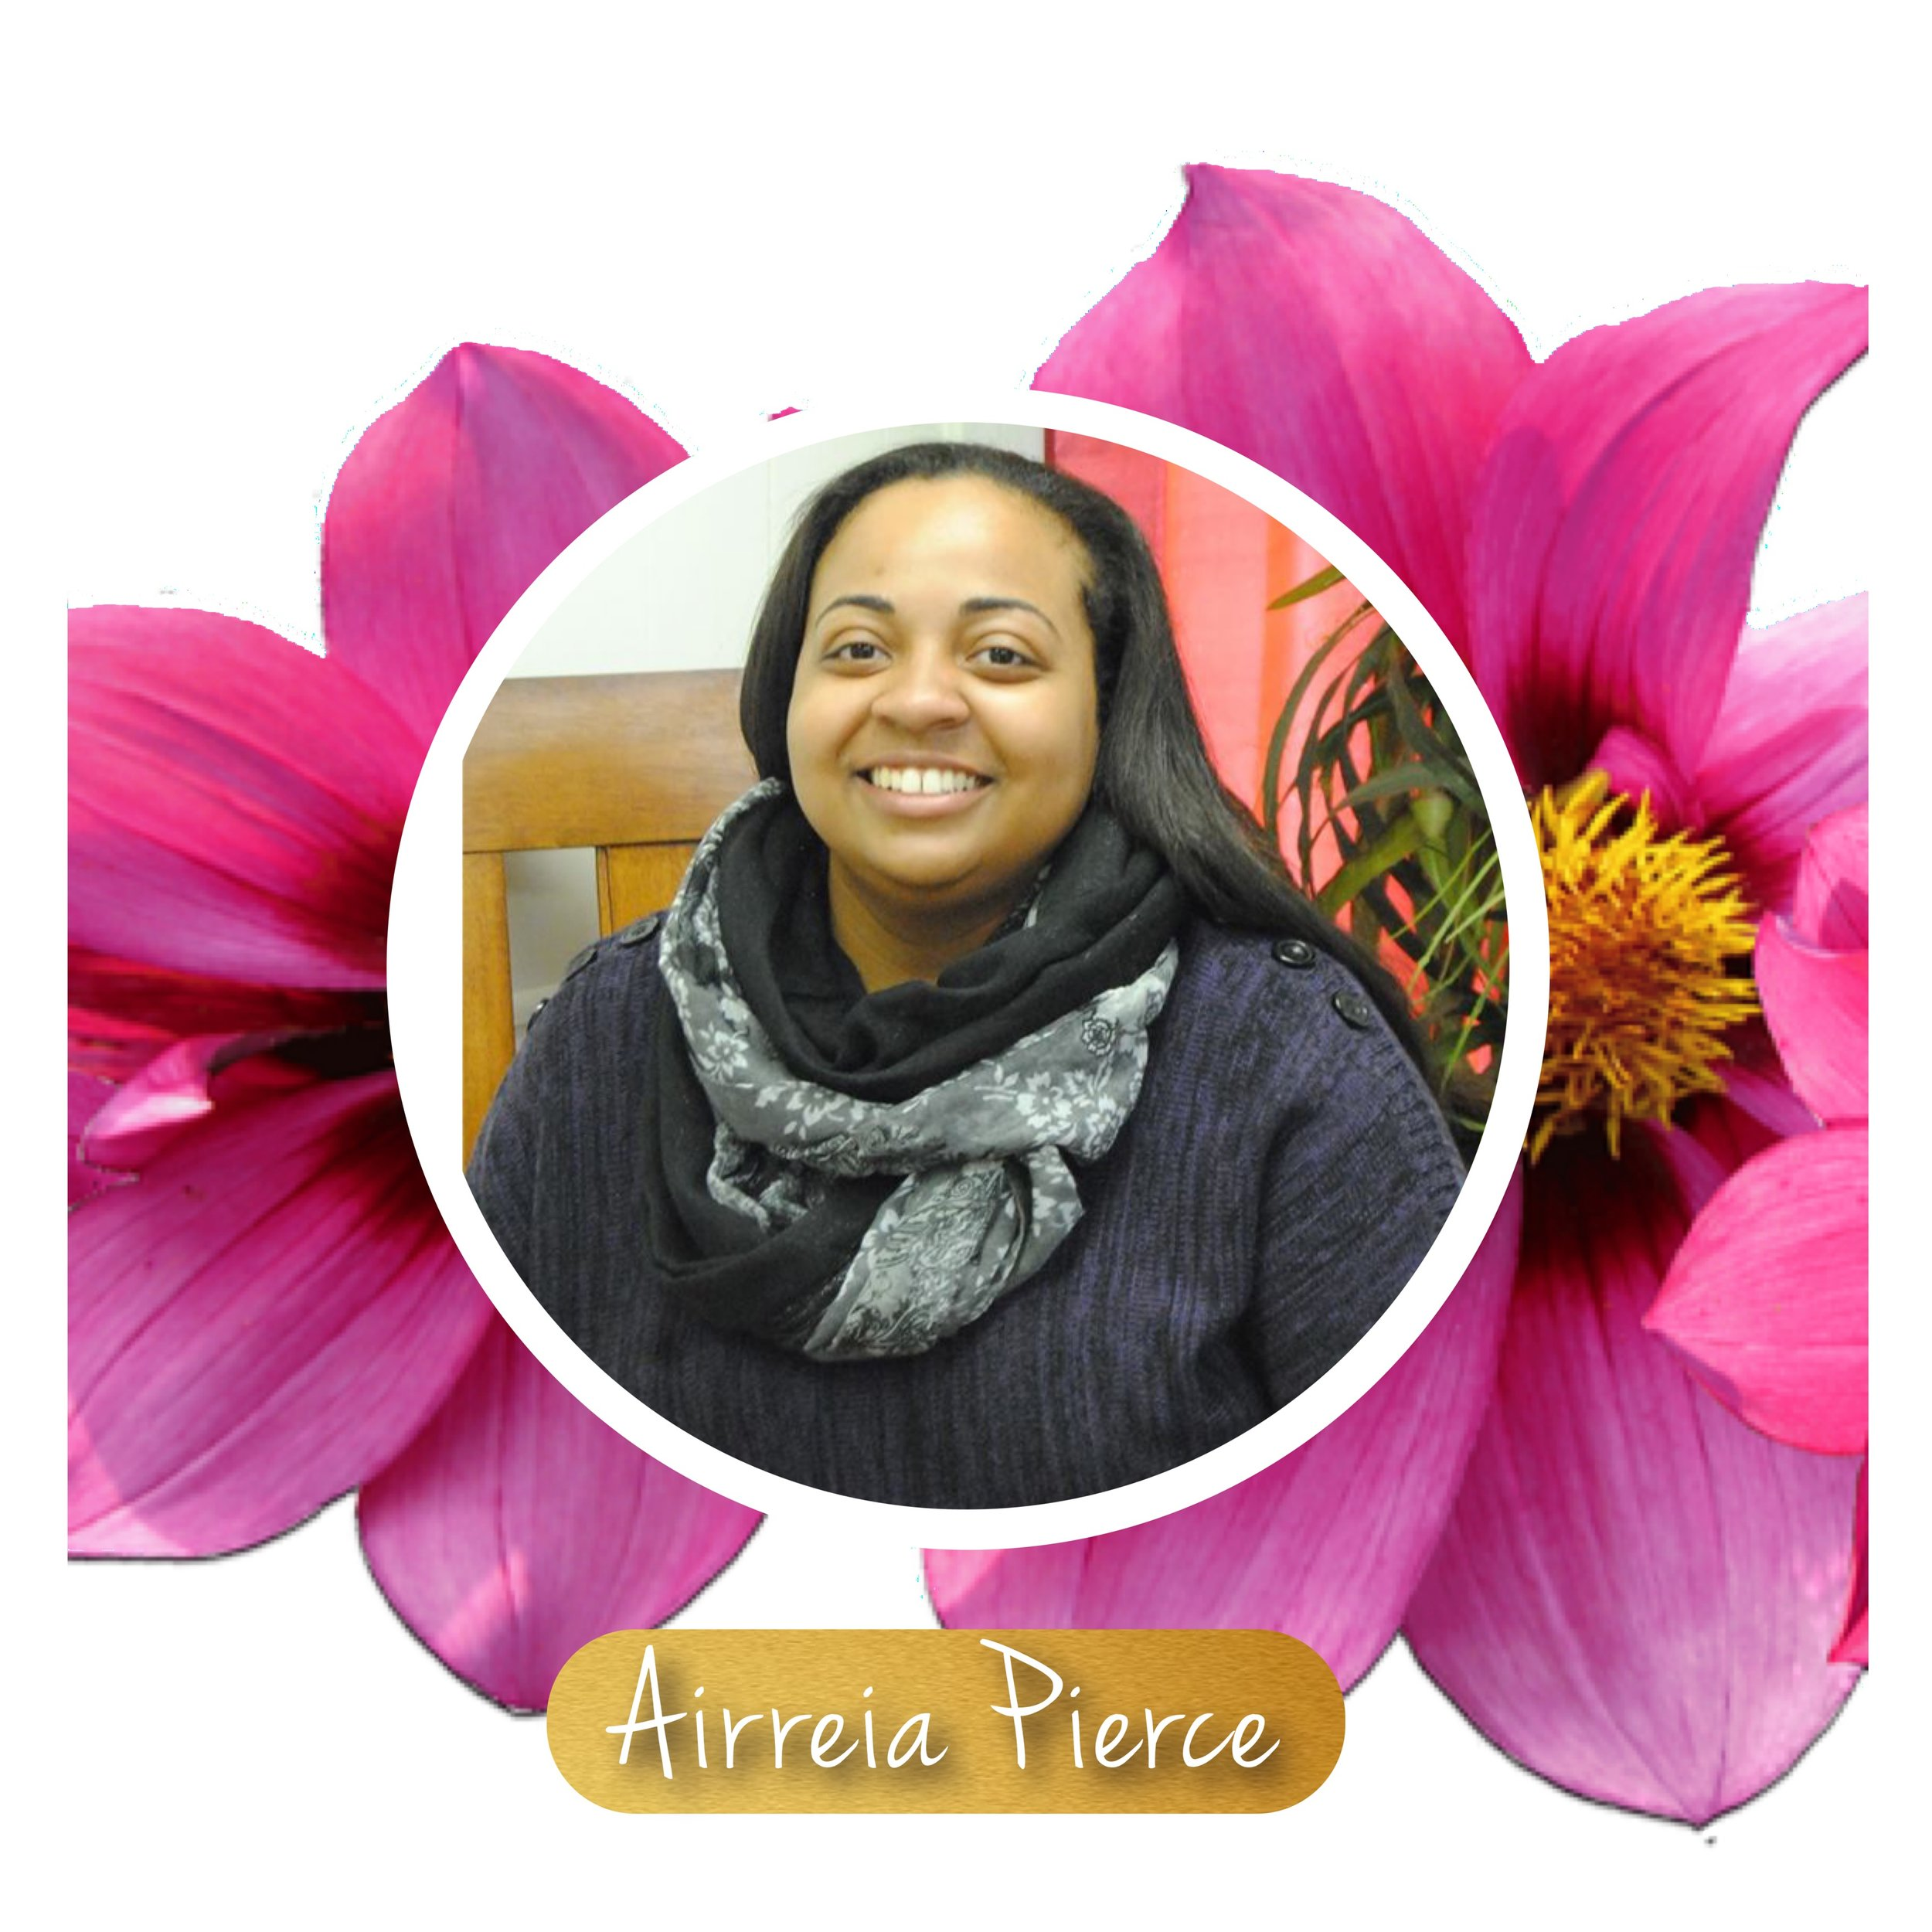 Airreria Pierce